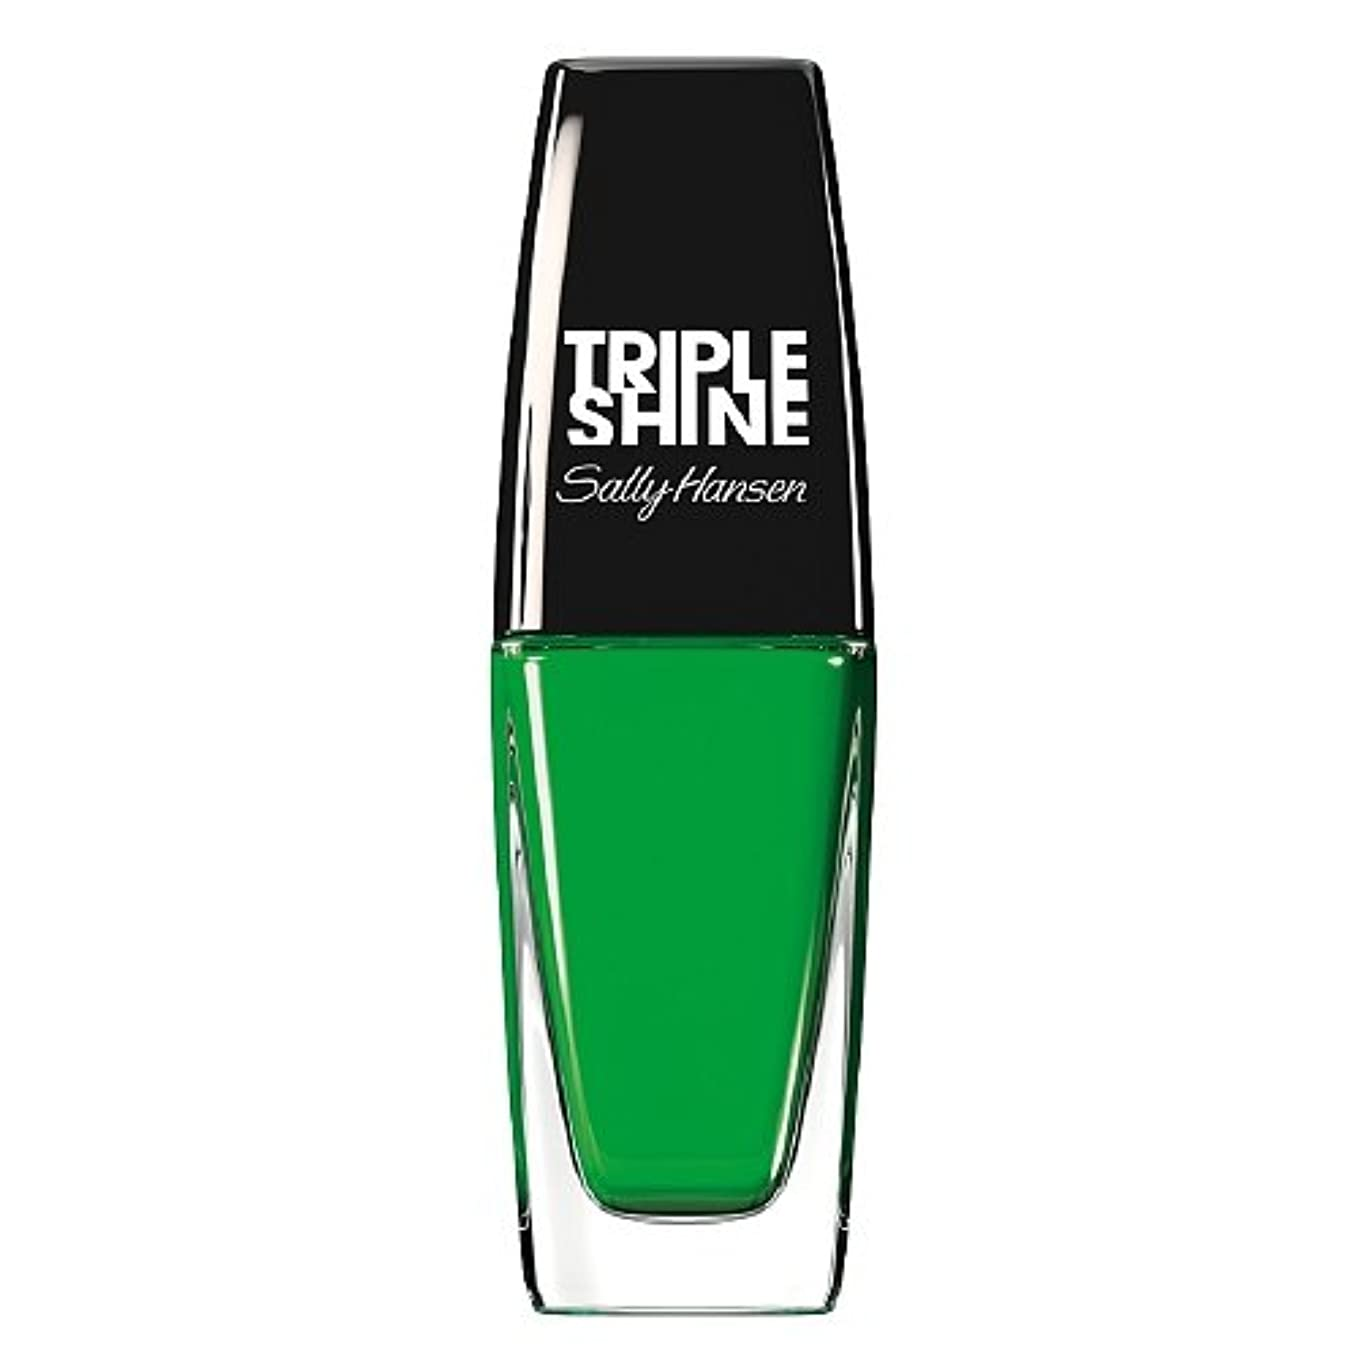 若者とにかくリテラシーSALLY HANSEN Triple Shine Nail Polish - Kelp Out (並行輸入品)